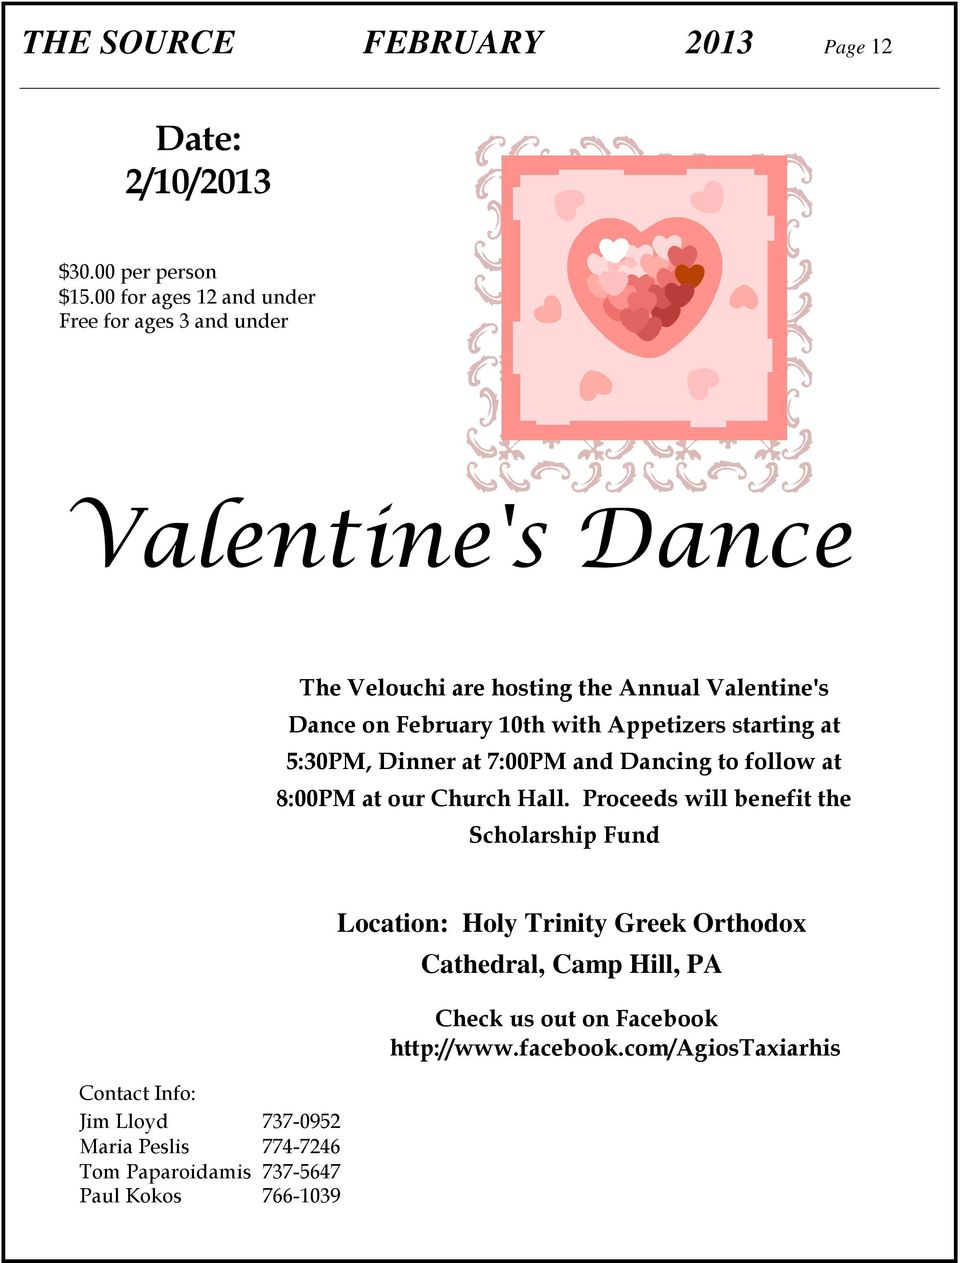 Appetizers starting at 5:30PM, Dinner at 7:00PM and Dancing to follow at 8:00PM at our Church Hall.